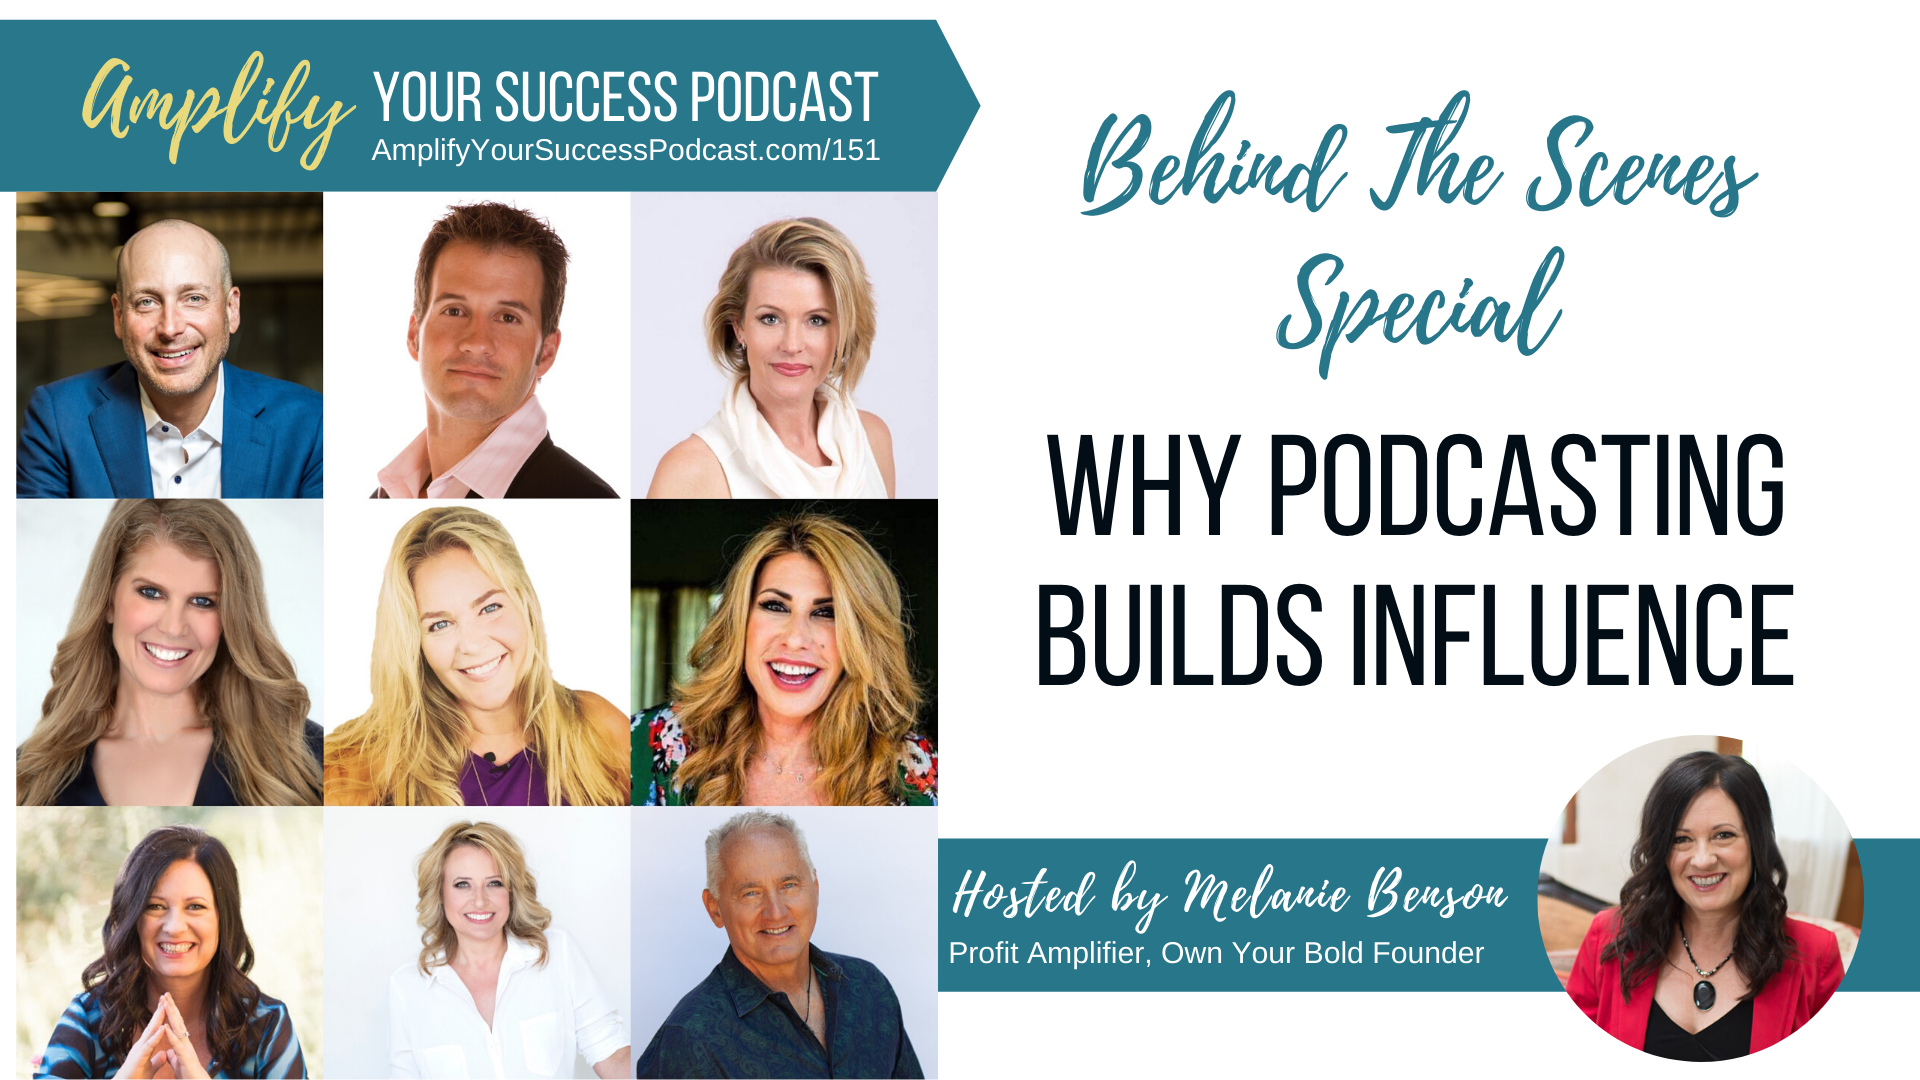 Nine ICONS of Influence Reveal Their Best Podcasting Tips